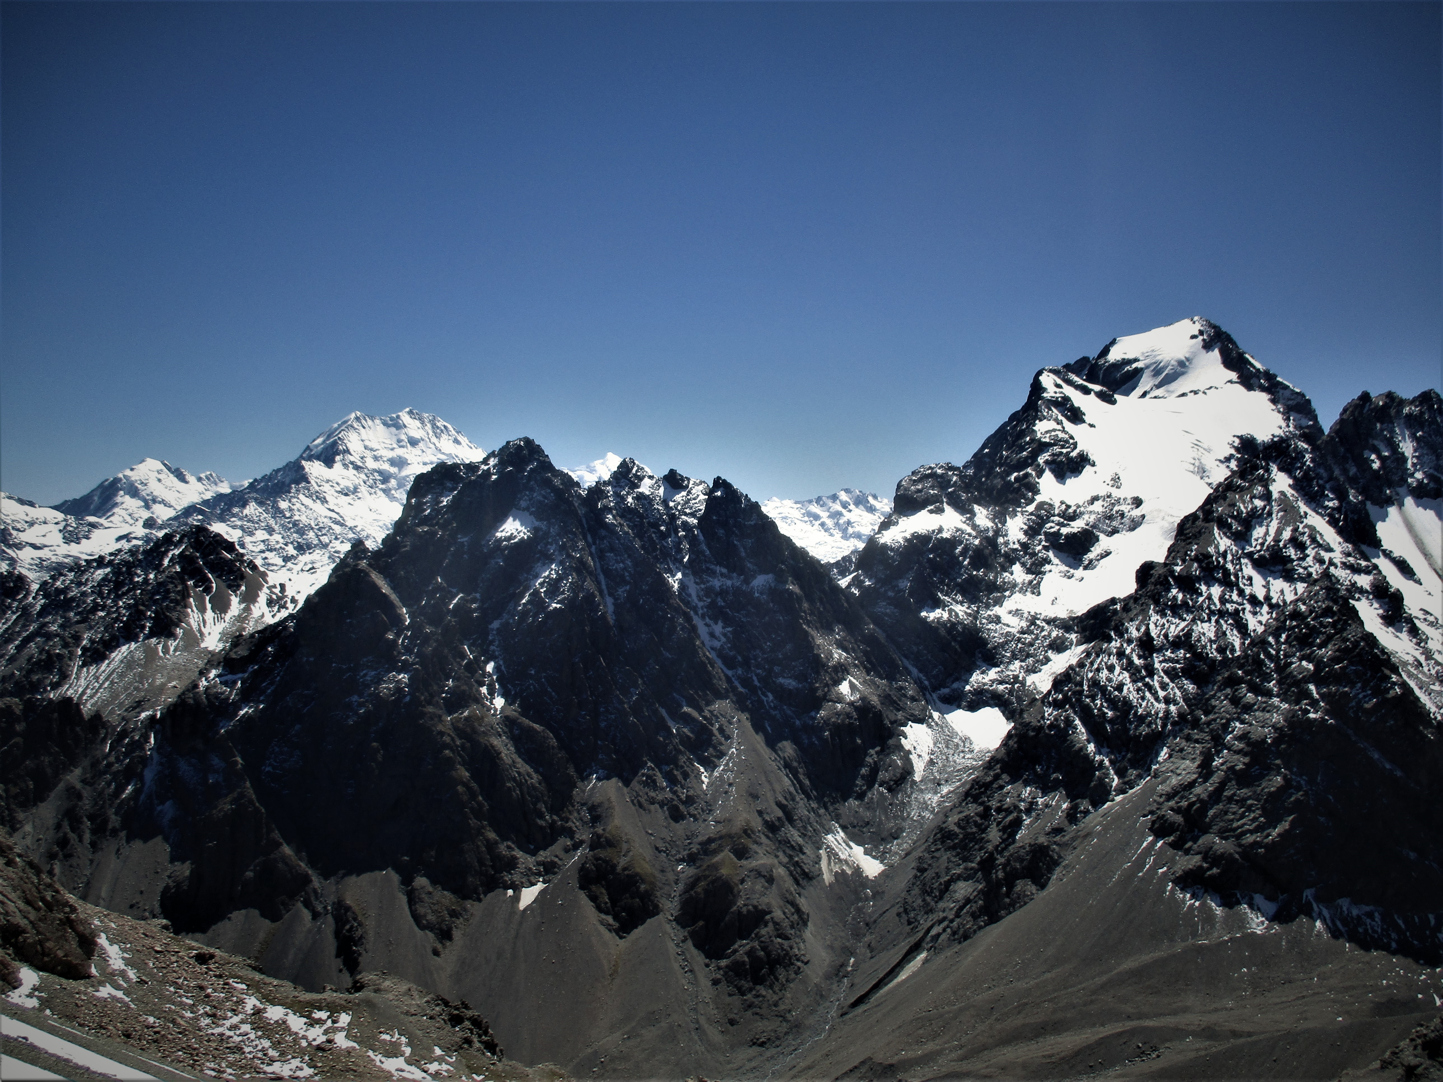 La Perouse ,Aoraki/Mount Cook and the Nuns Veil - our objective the following day as viewed from Mount Little.